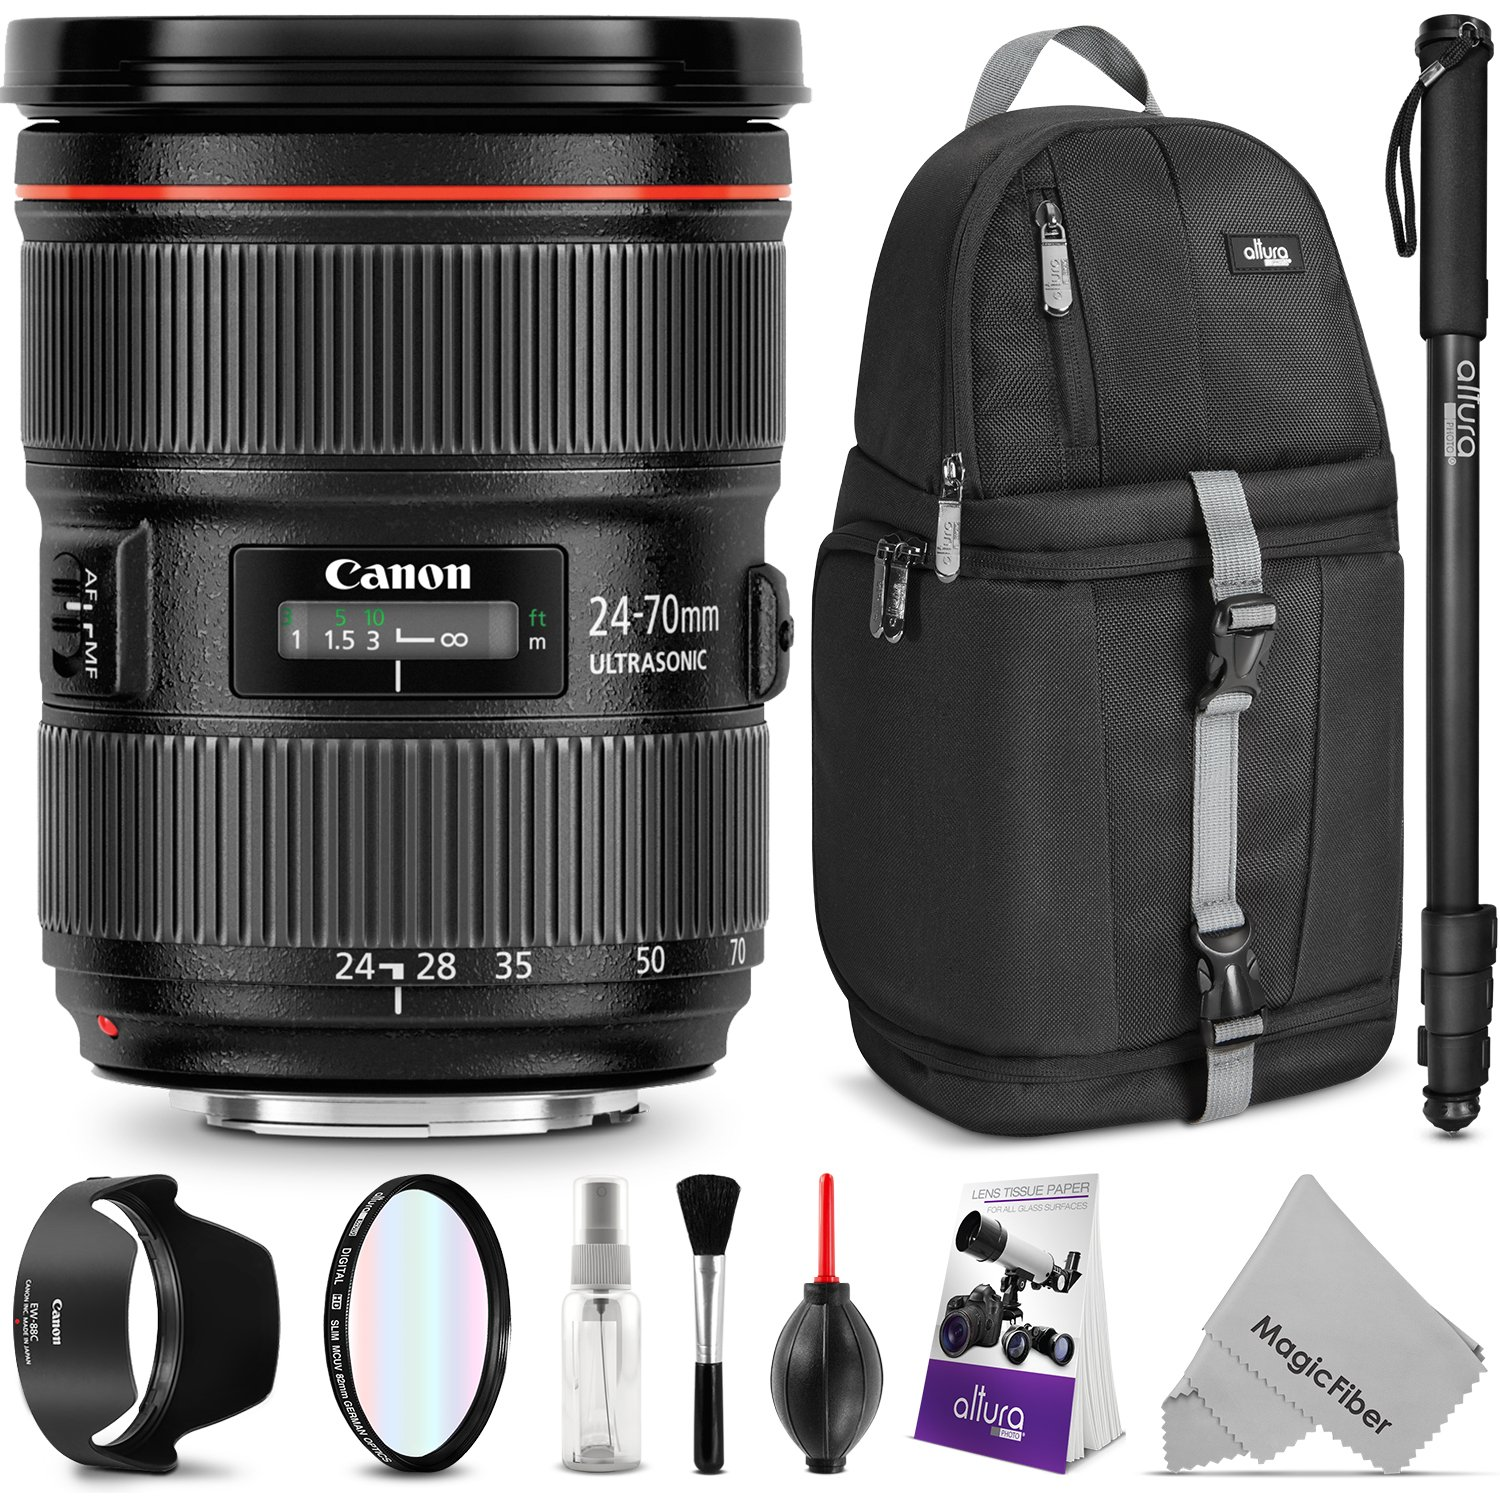 Canon EF 24-70mm f/2.8L II USM Standard Zoom Lens w/ Advanced Photo and Travel Bundle - Includes: Altura Photo Sling Backpack, Monopod, UV Protector, Camera Cleaning Set